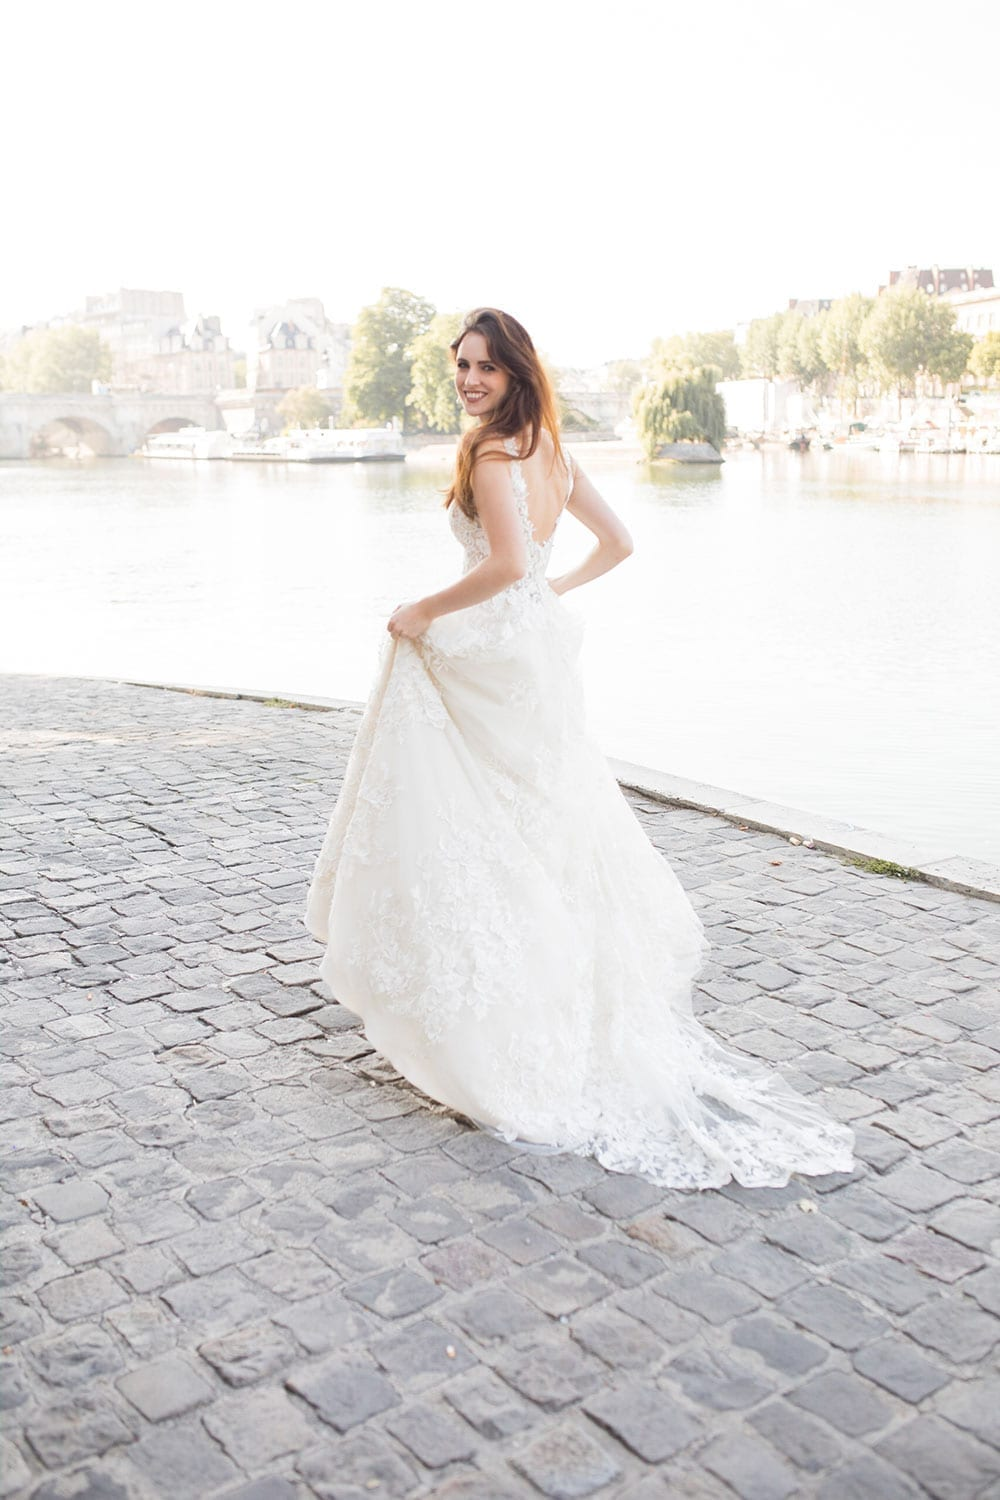 Model wearing Vinka Design Delta Wedding Dress, a Romantic v-neck wedding dress with a soft silhouette of layers of tulle & delicate 3D lace and sheer bodice on Parisian path walking along path next to river.